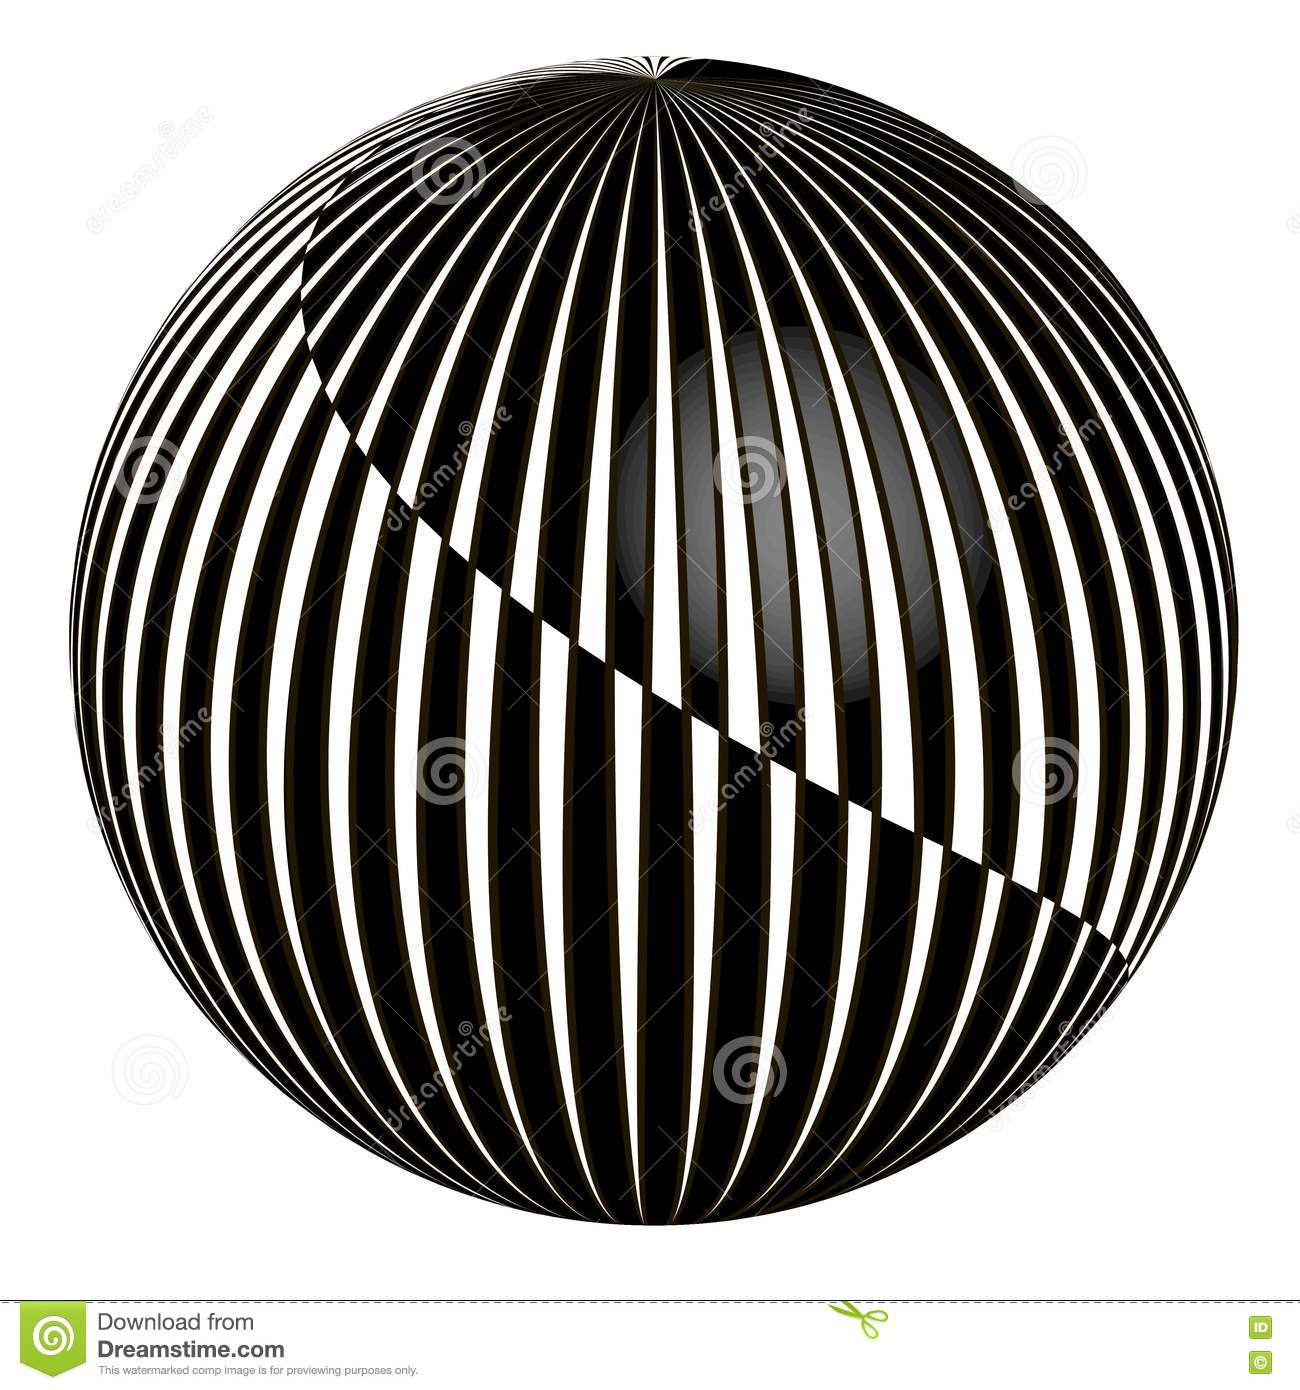 3D abstract ball